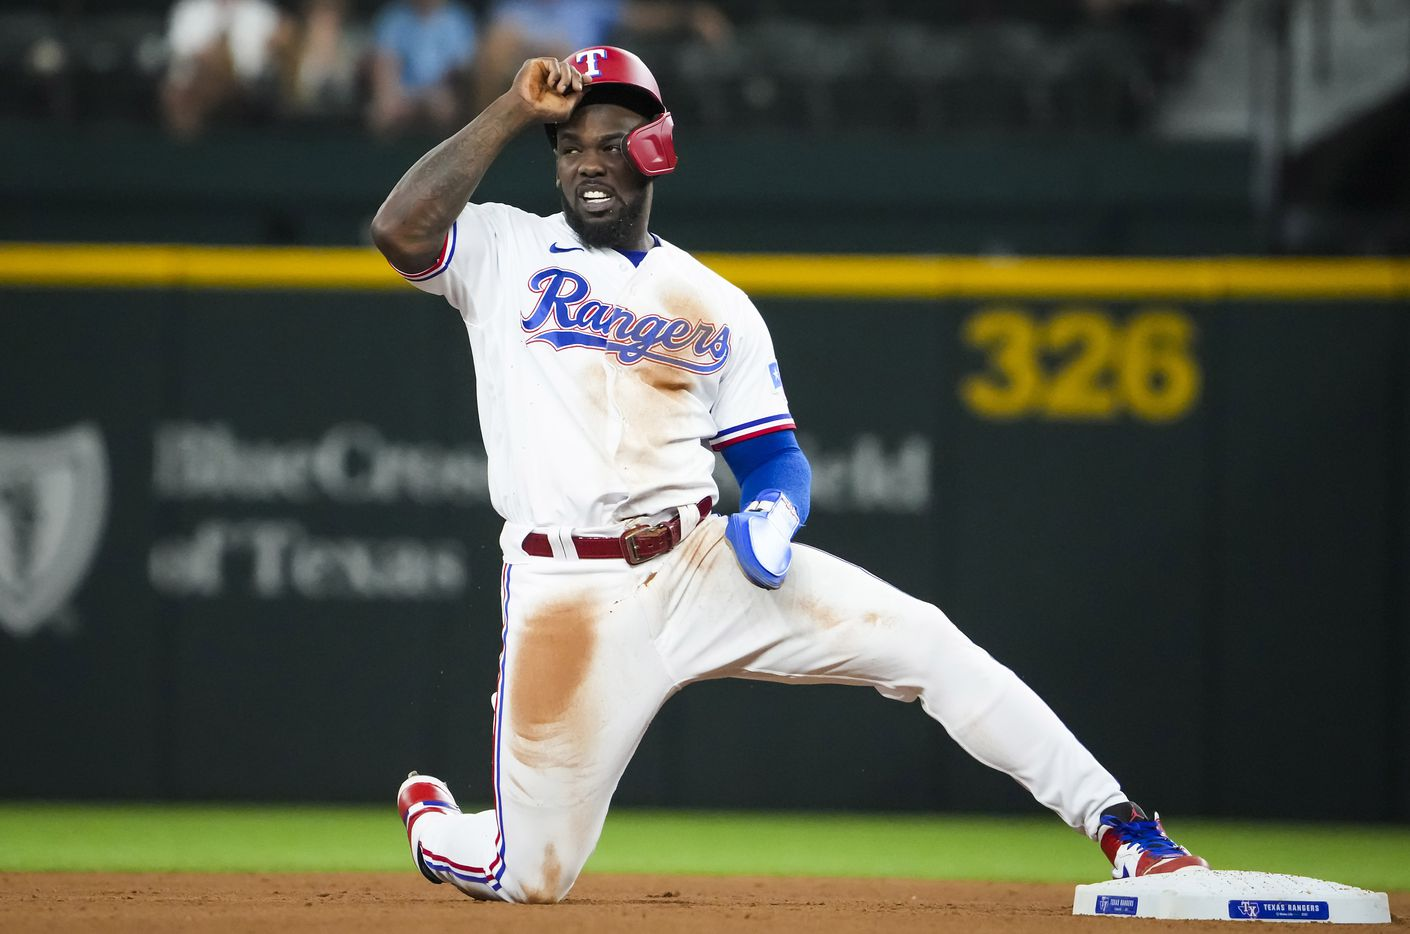 Texas Rangers center fielder Adolis Garcia reacts after being caught stealing during the fourth inning against the Detroit Tigers at Globe Life Field on Tuesday, July 6, 2021.